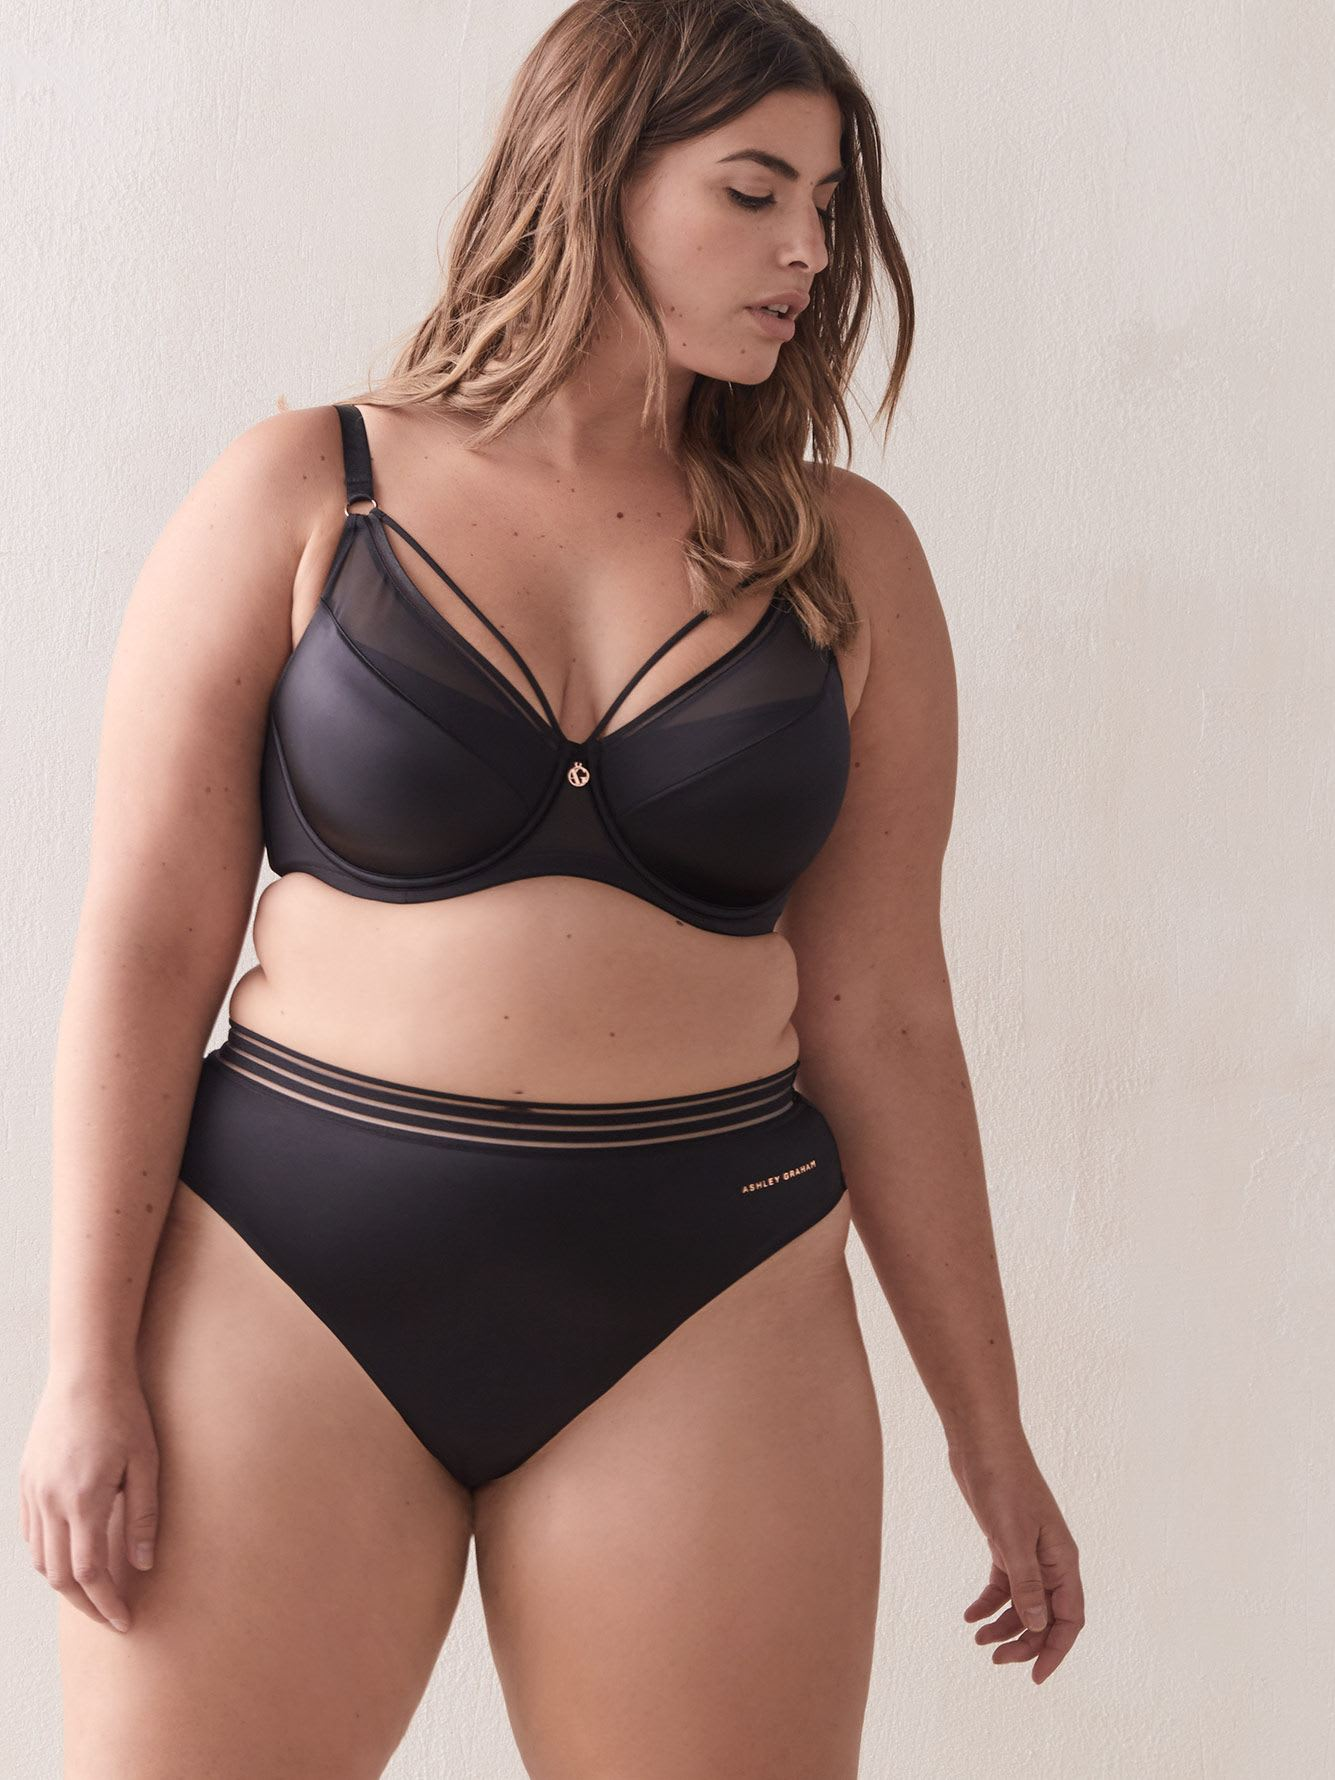 Ashley Graham - Soutien-gorge Diva à demi bonnets, bonnets G et H